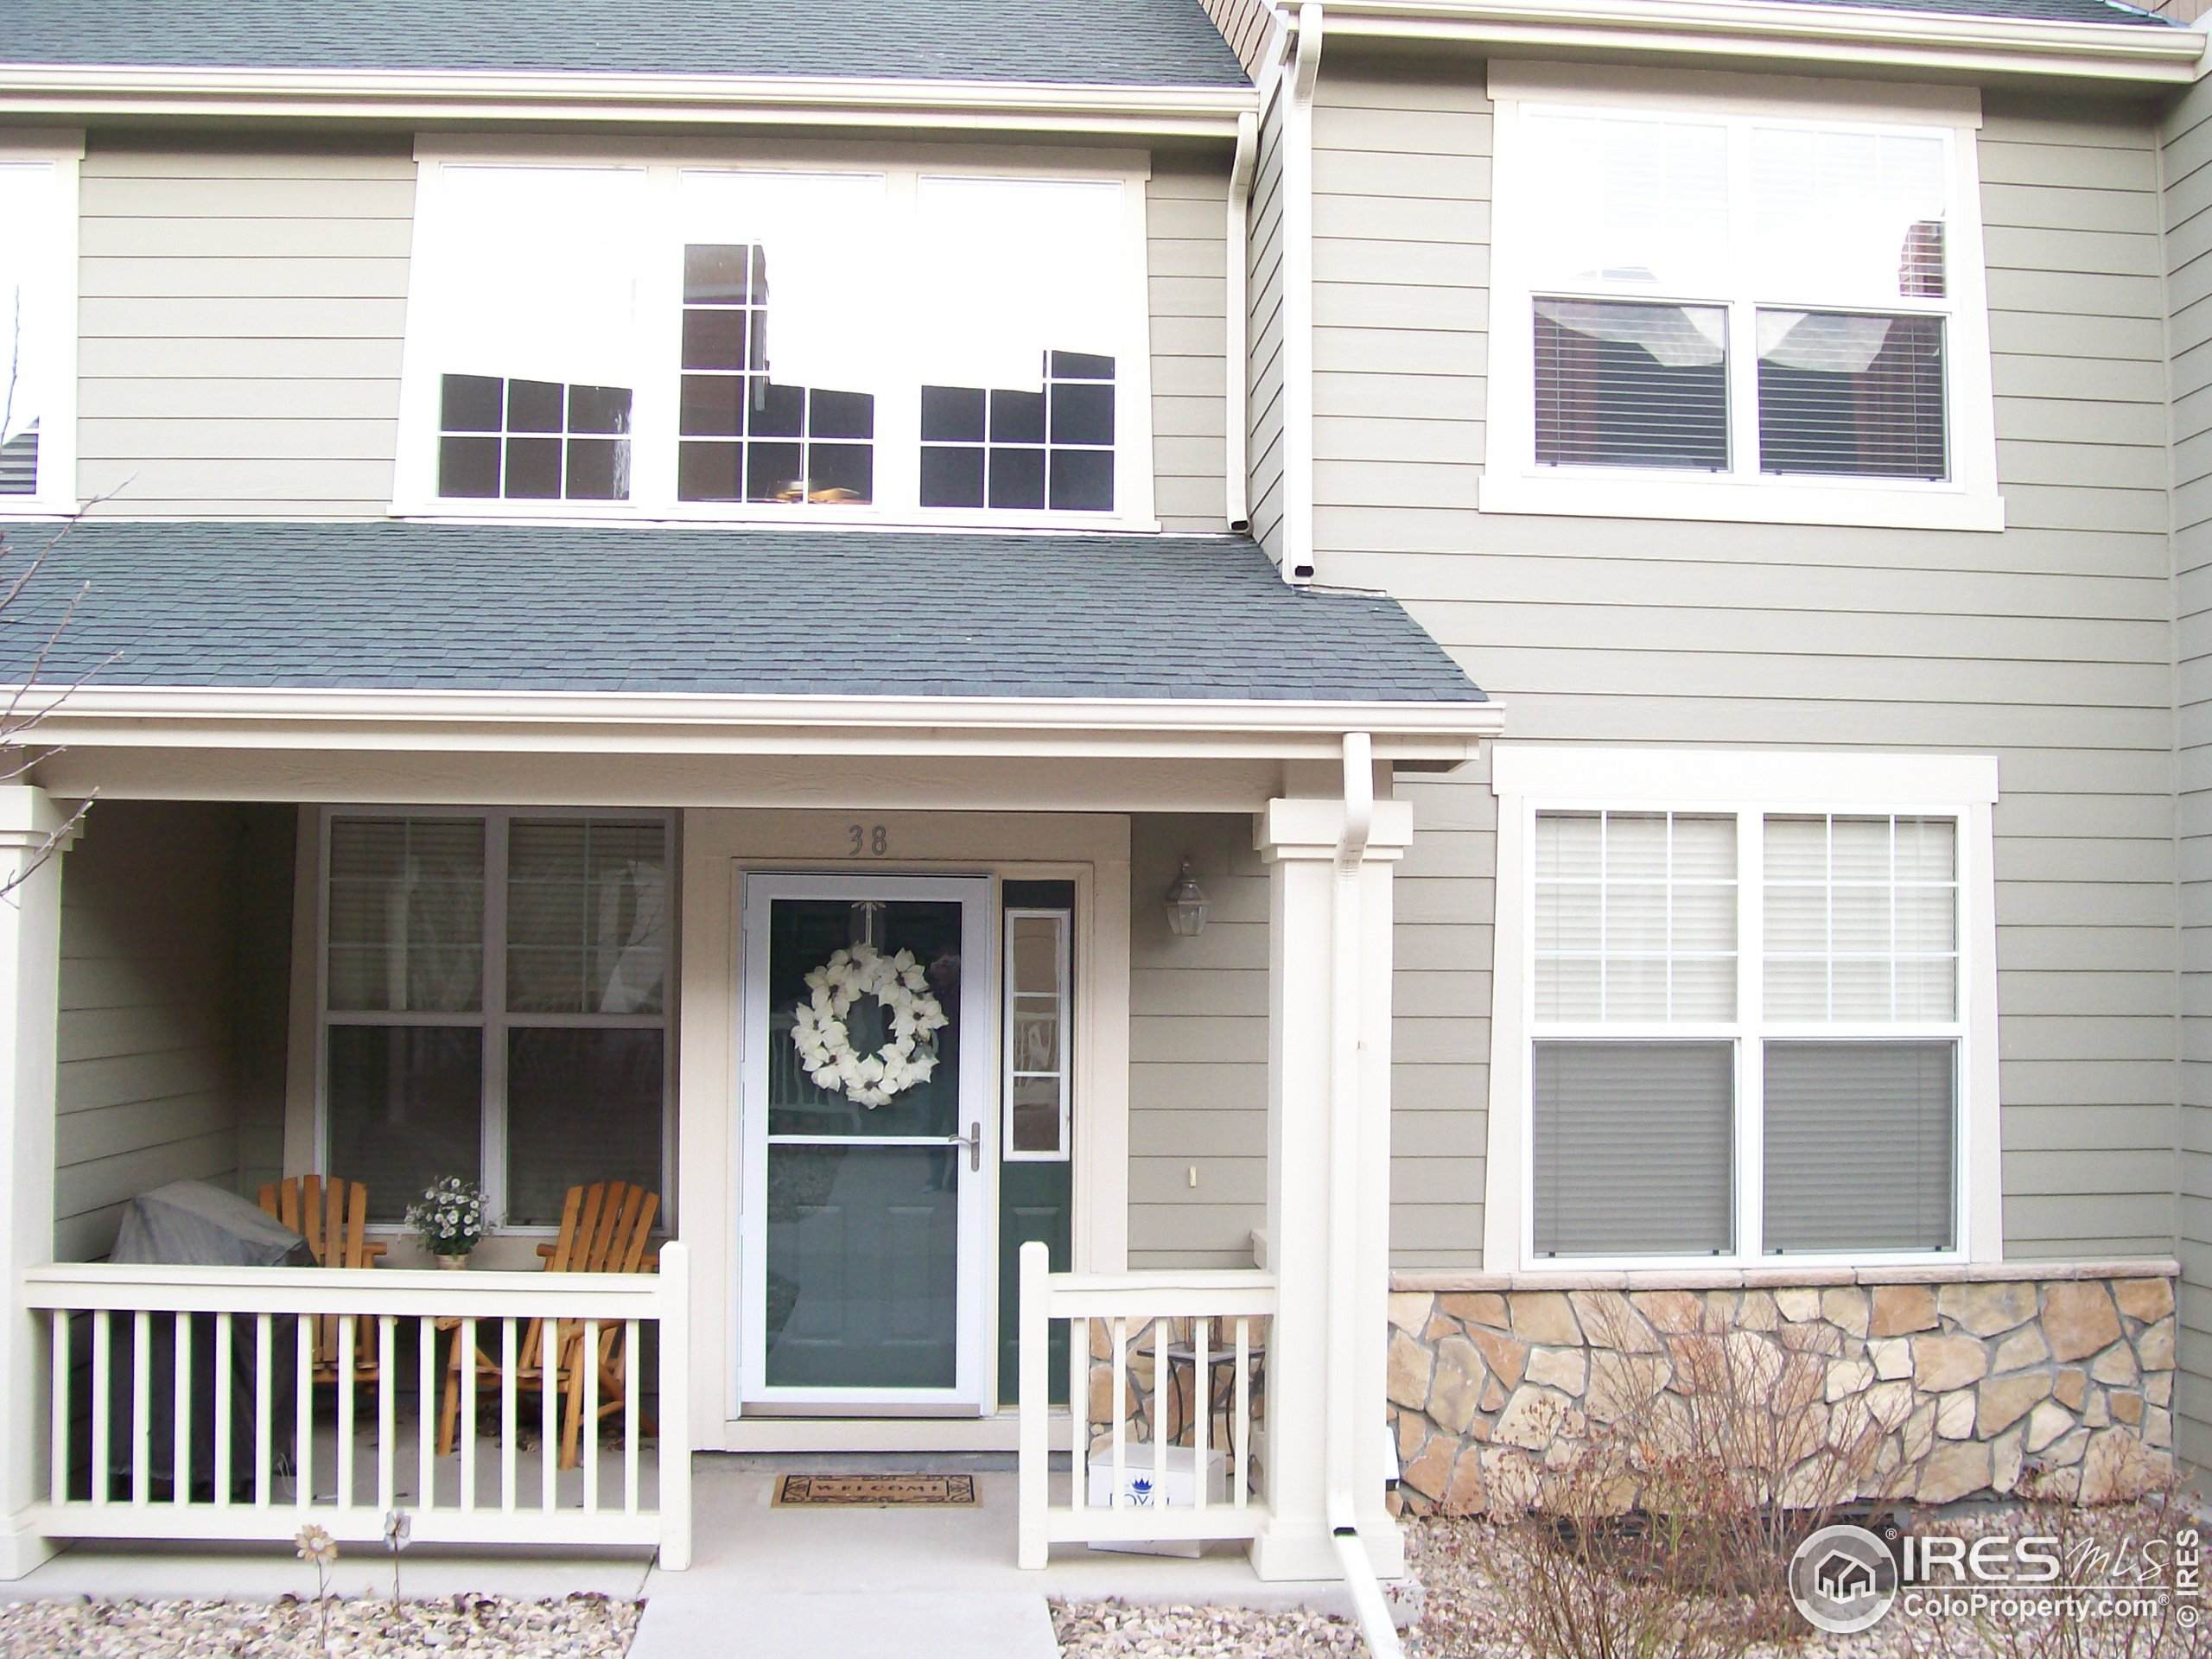 165 Western Sky Cir, Longmont, CO 80501 (MLS #923790) :: J2 Real Estate Group at Remax Alliance